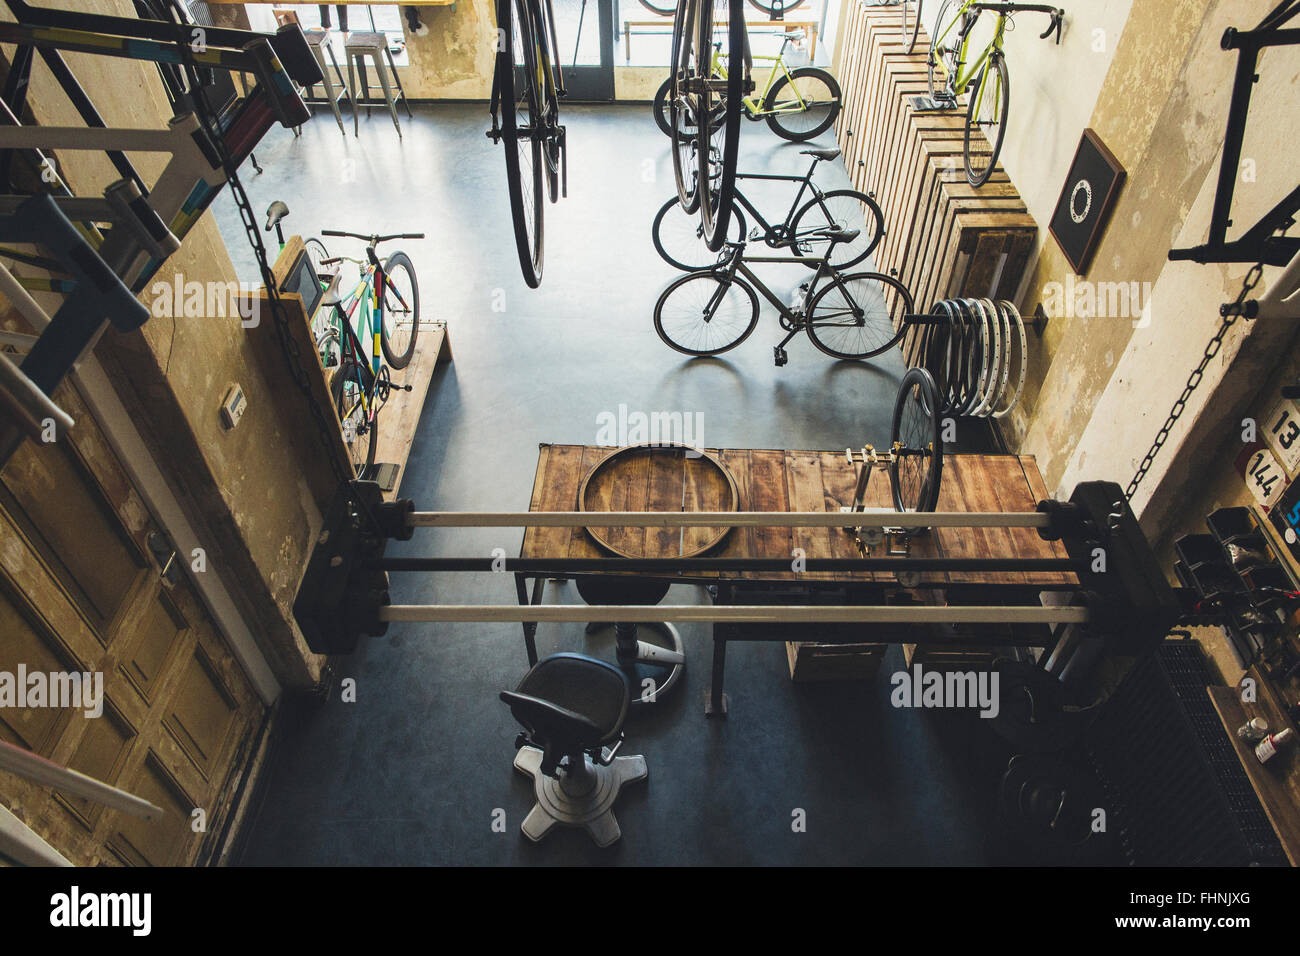 Assortment of bicycles in a custom-made bicycle store - Stock Image